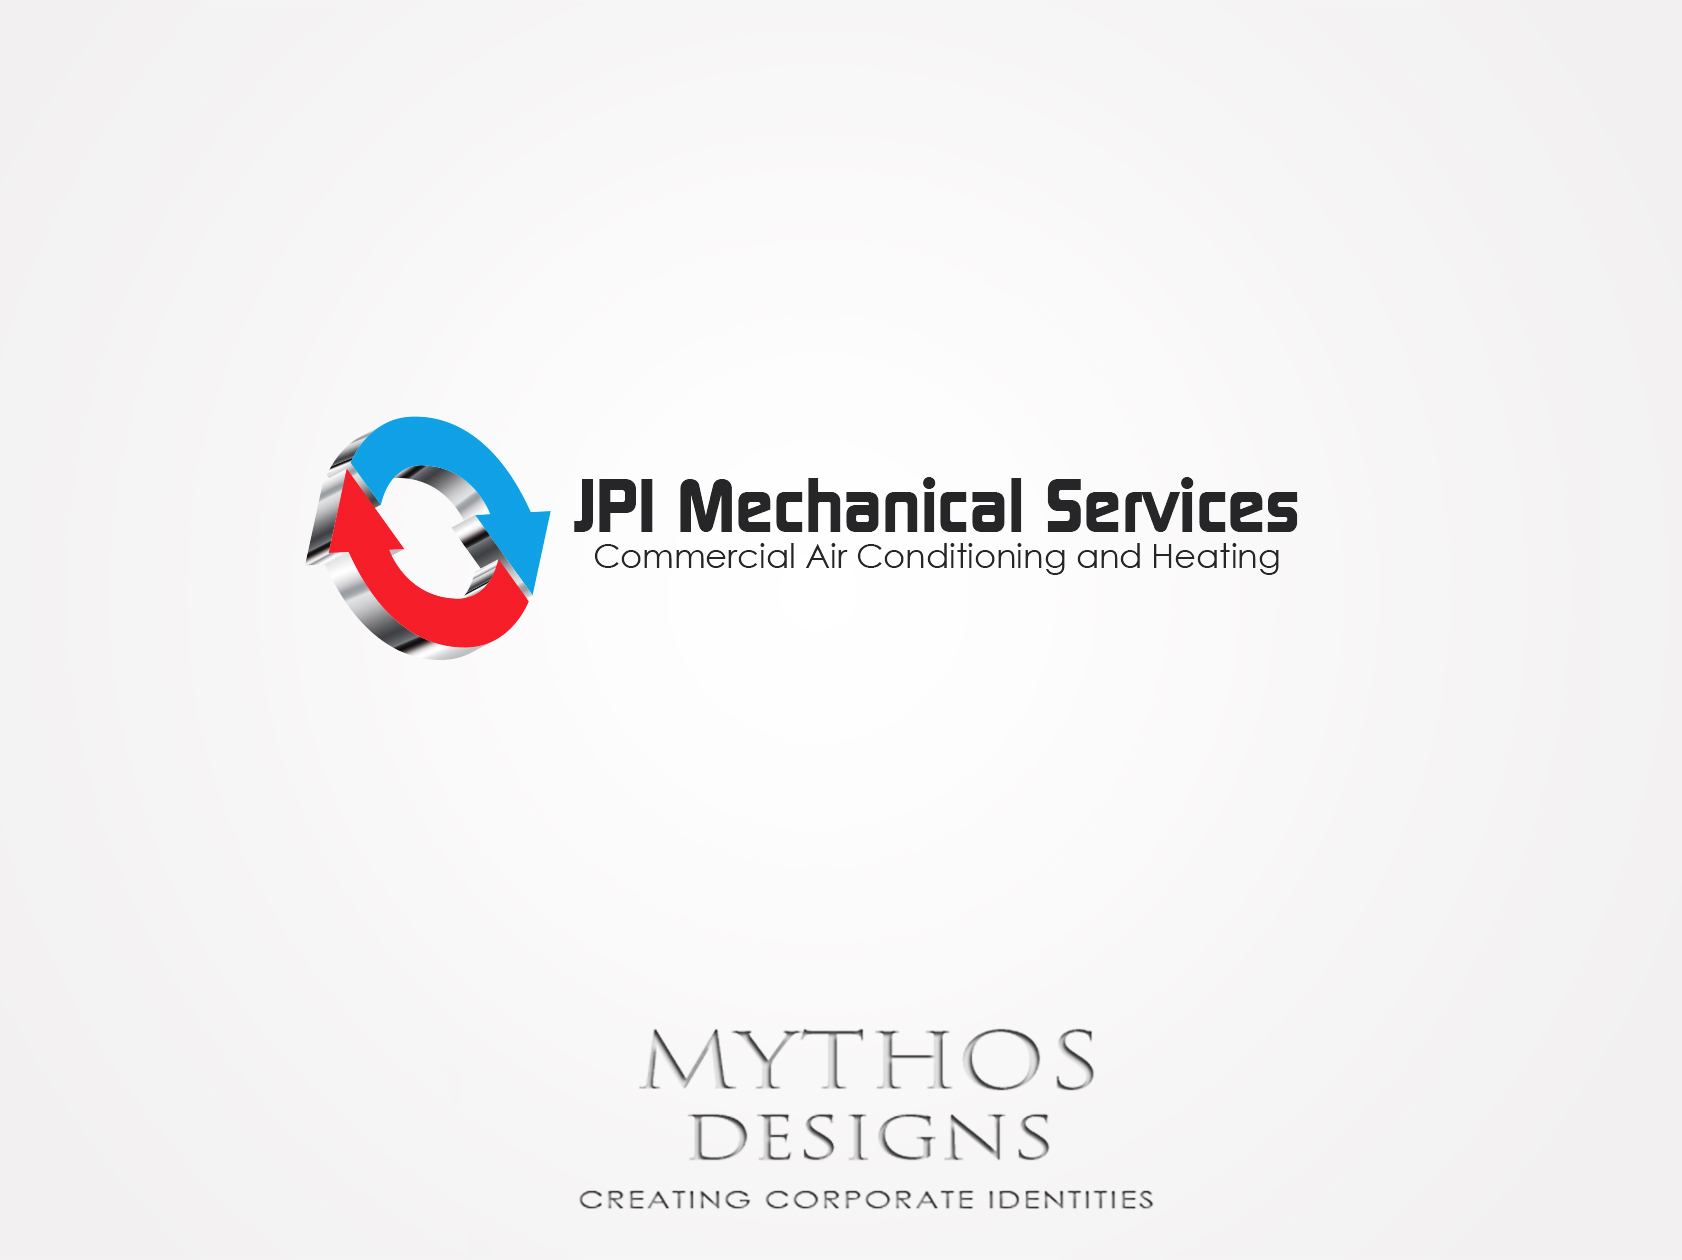 Logo Design by Mythos Designs - Entry No. 79 in the Logo Design Contest Inspiring Logo Design for JPI Mecanical Services.